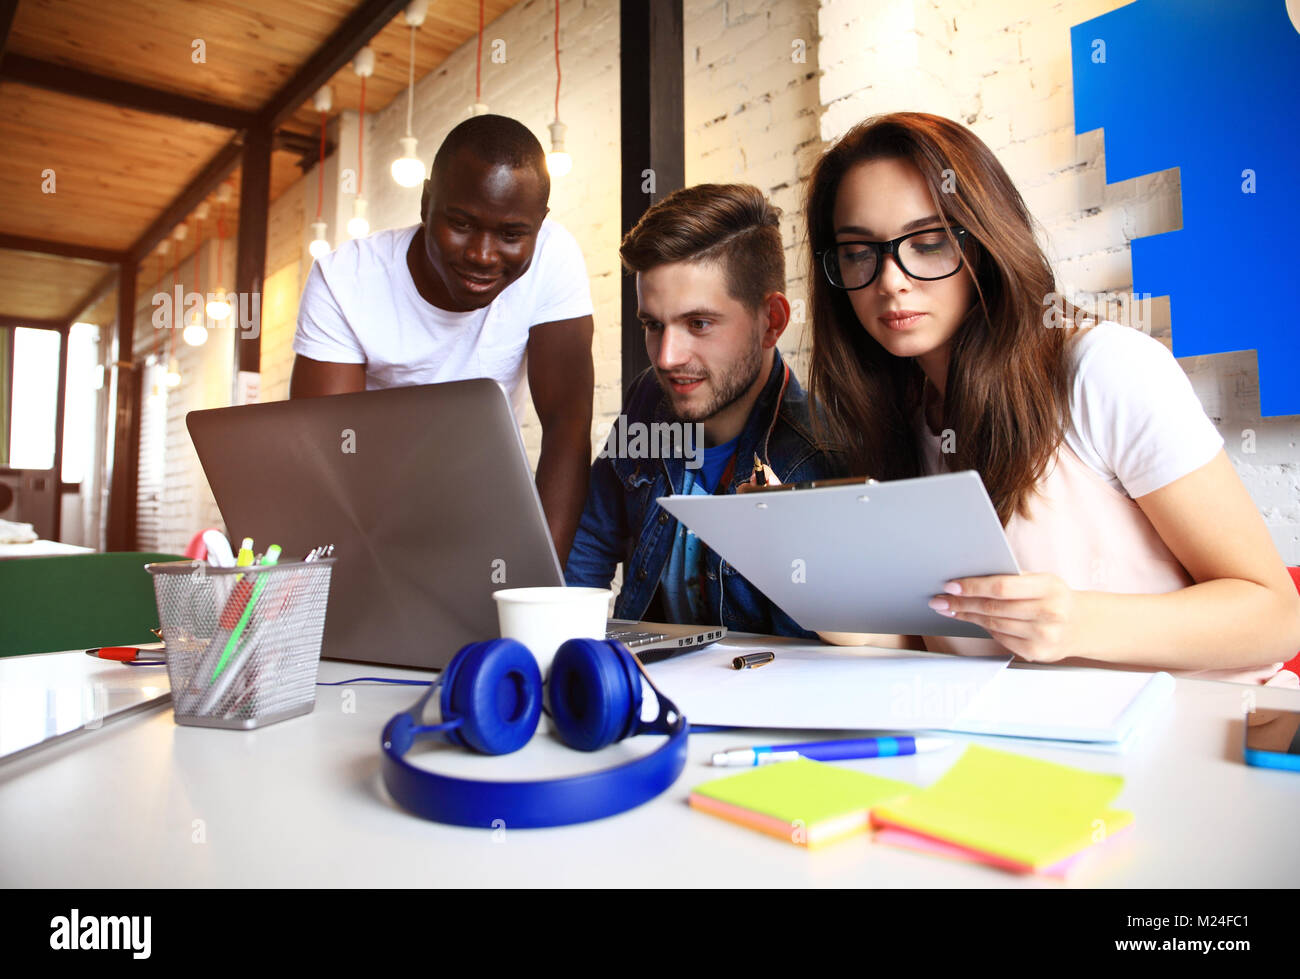 Startup Diversity Teamwork Brainstorming Meeting Concept.Business Team Coworkers Sharing World Economy Report Document - Stock Image